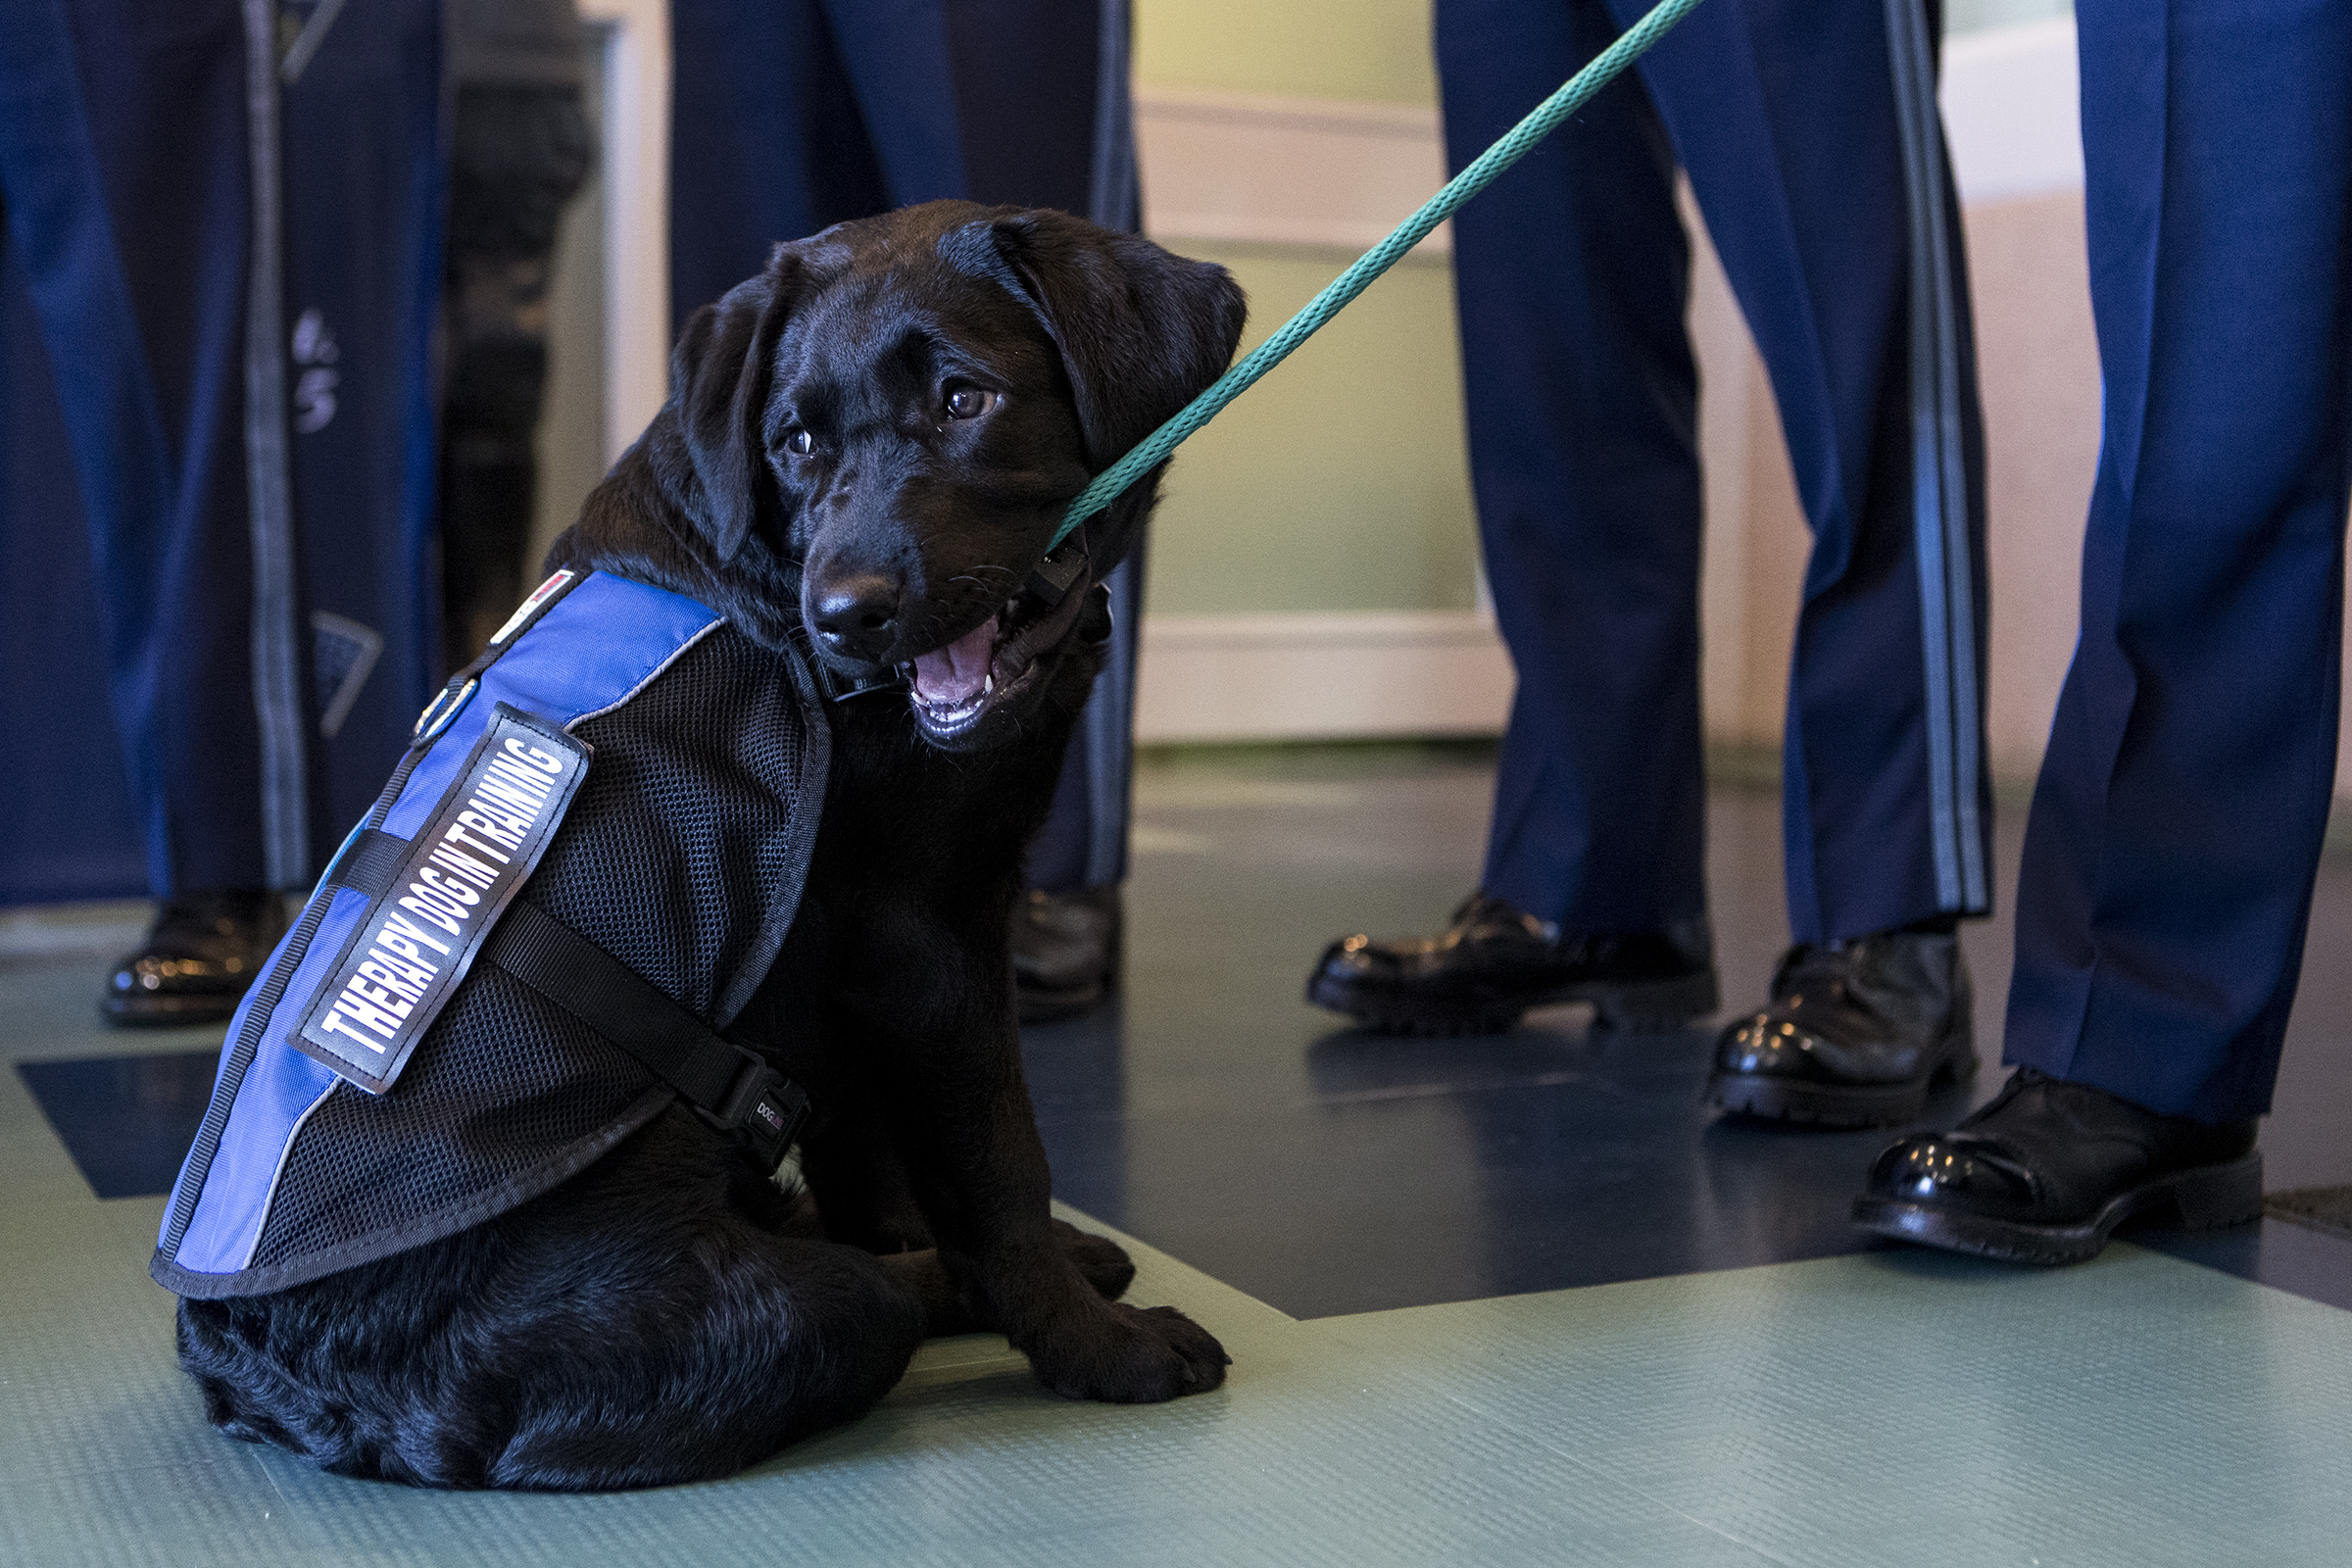 Luna, a four-month old English Black Labrador, chews on her leash after being introduced as the State Police's first-ever comfort dog during a press conference at the General Headquarters in Framingham on April 25, 2019.